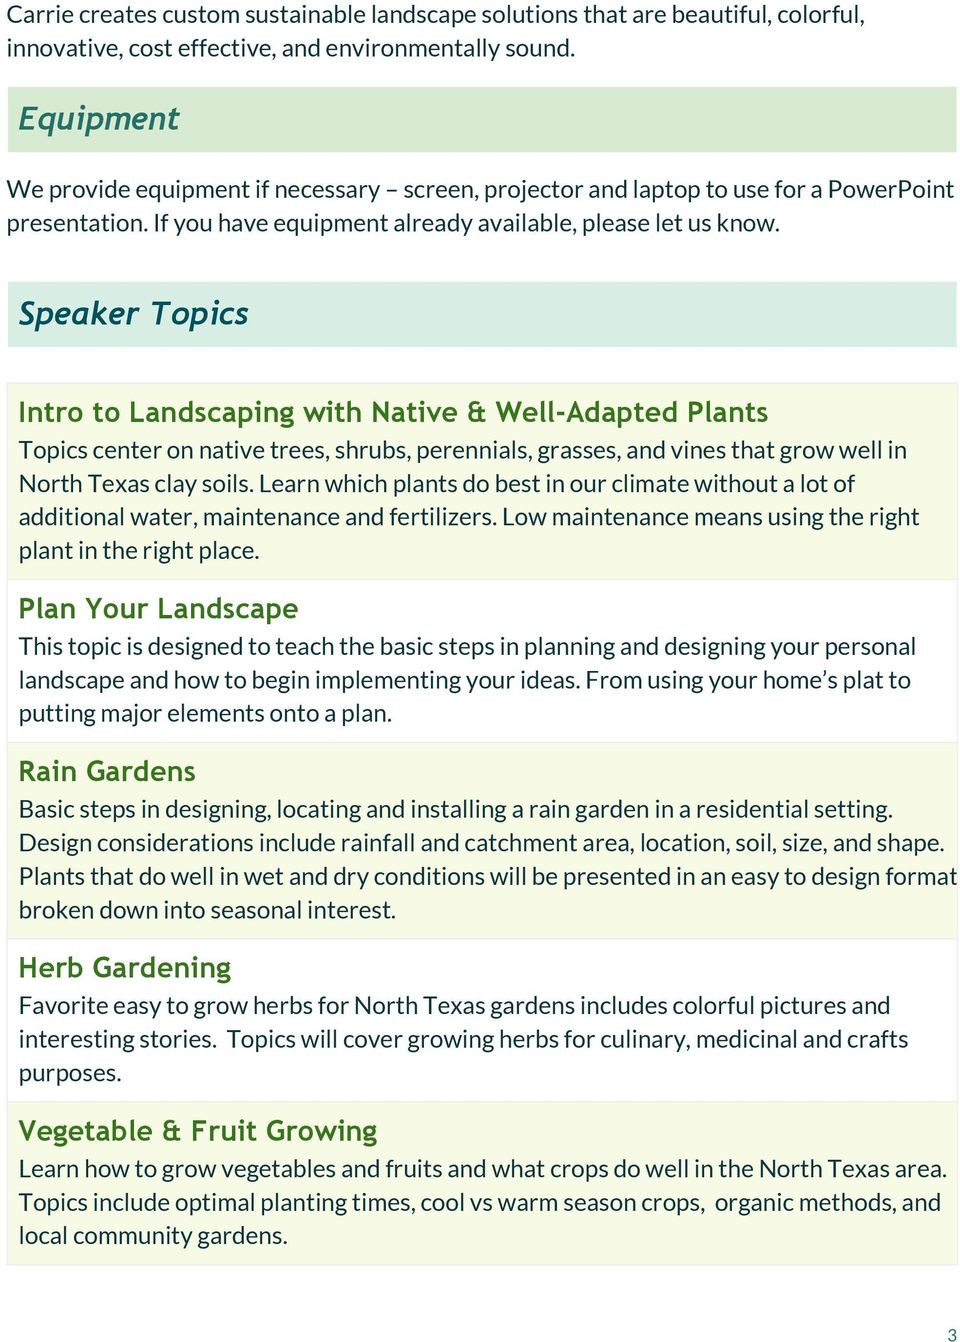 Speaker Topics Intro to Landscaping with Native & Well-Adapted Plants Topics center on native trees, shrubs, perennials, grasses, and vines that grow well in North Texas clay soils.